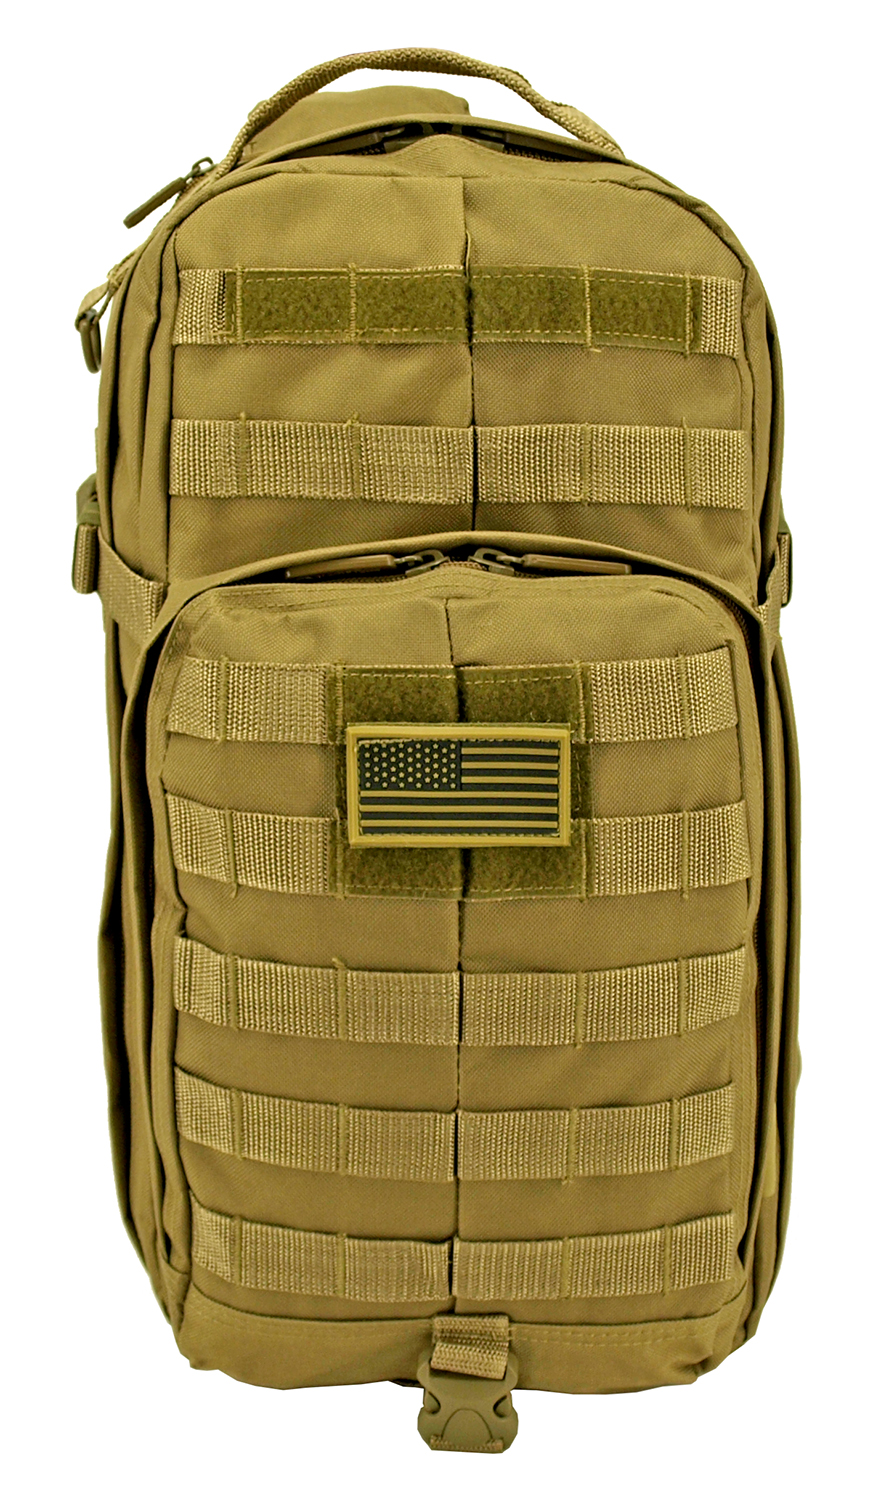 Tactical Rover Sling Bag - Tan